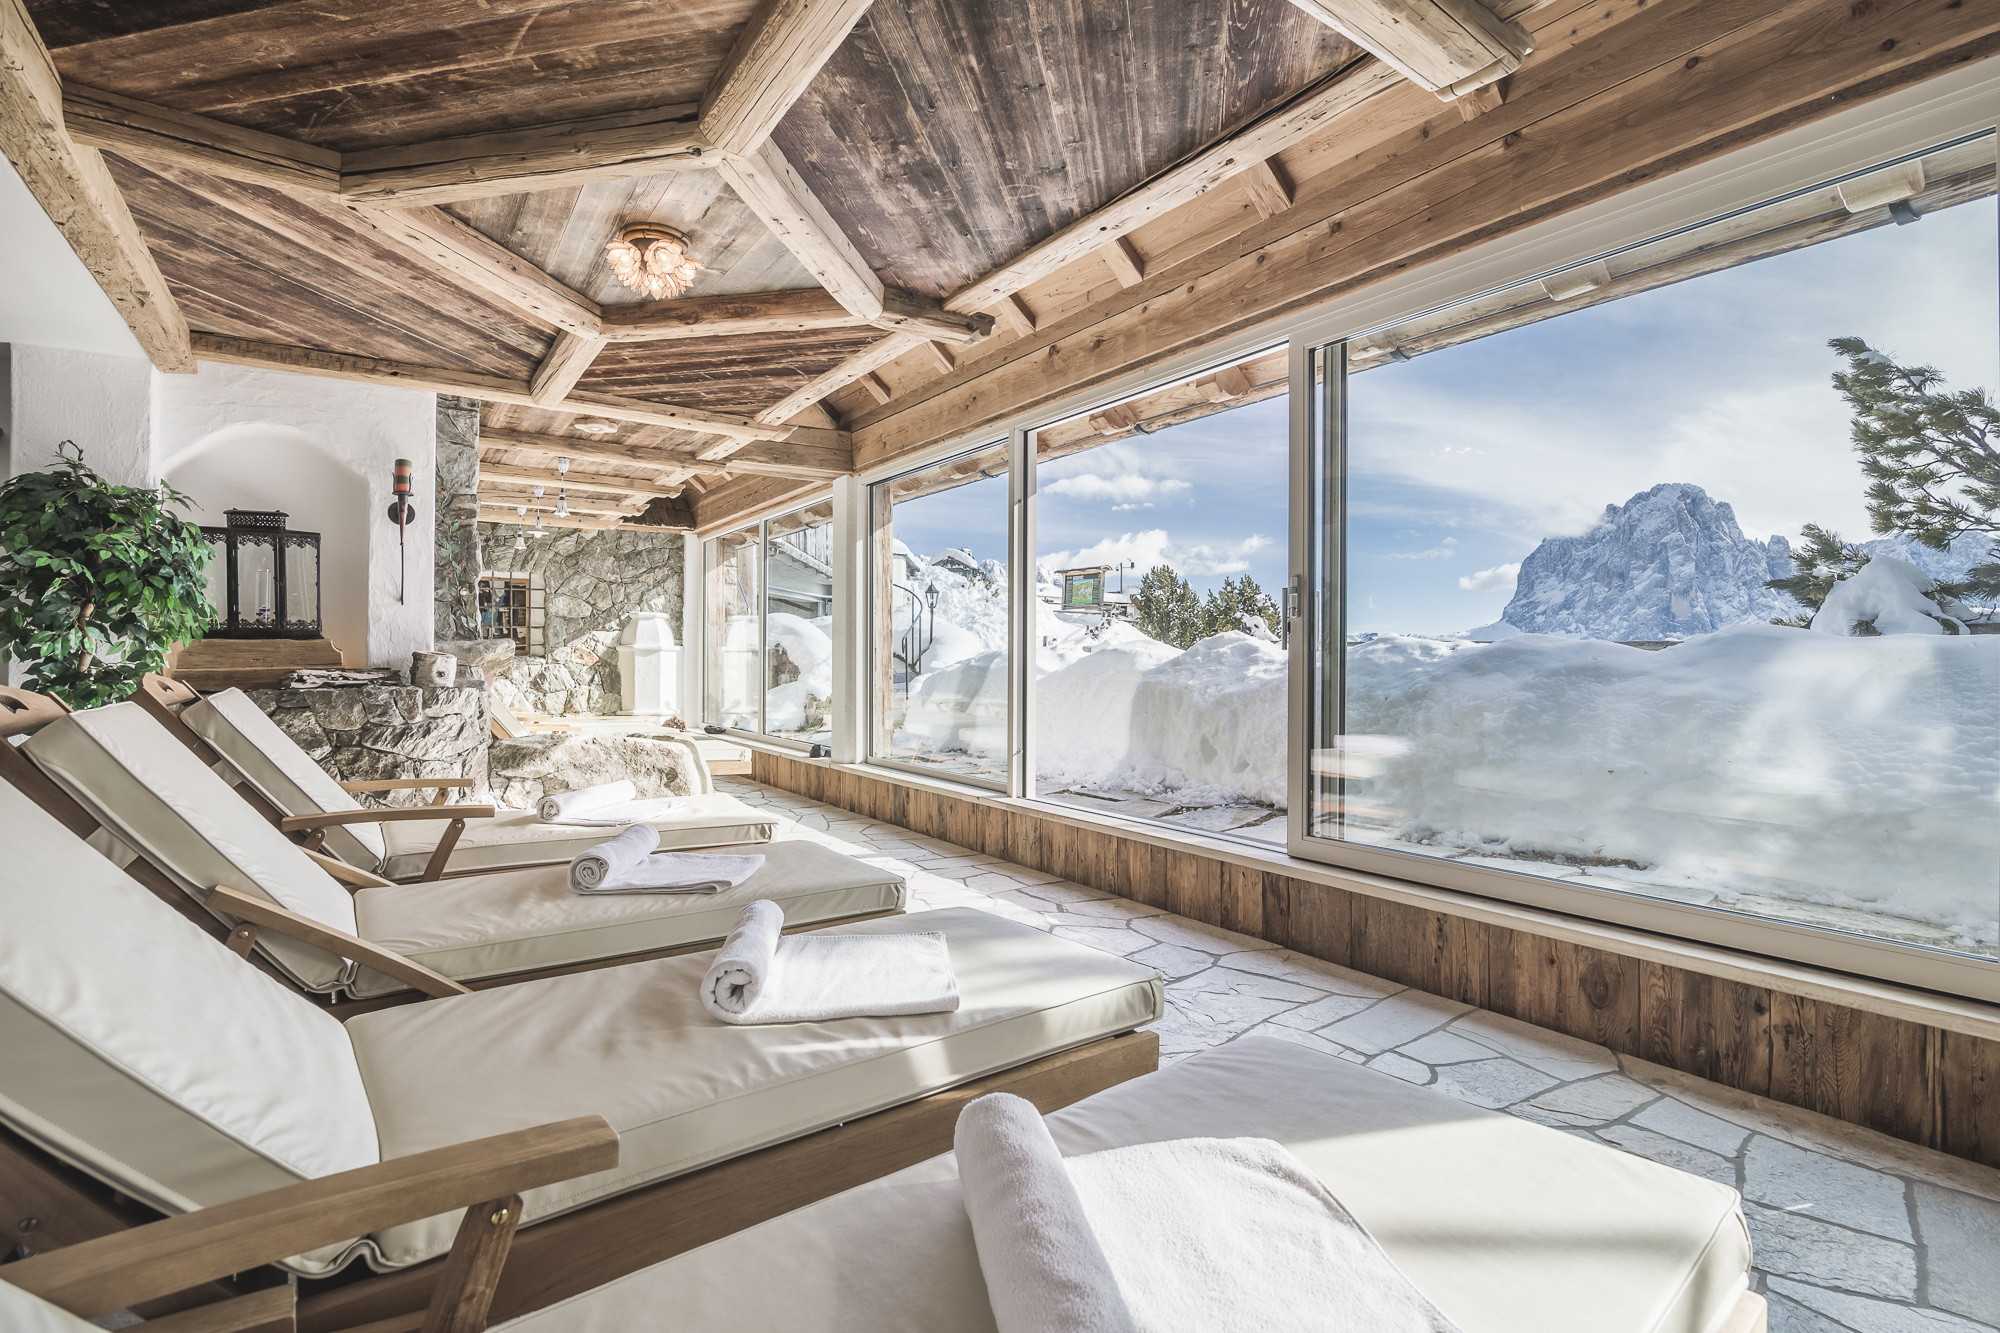 Let the Dolomites enchant you at Almhotel Col Raiser